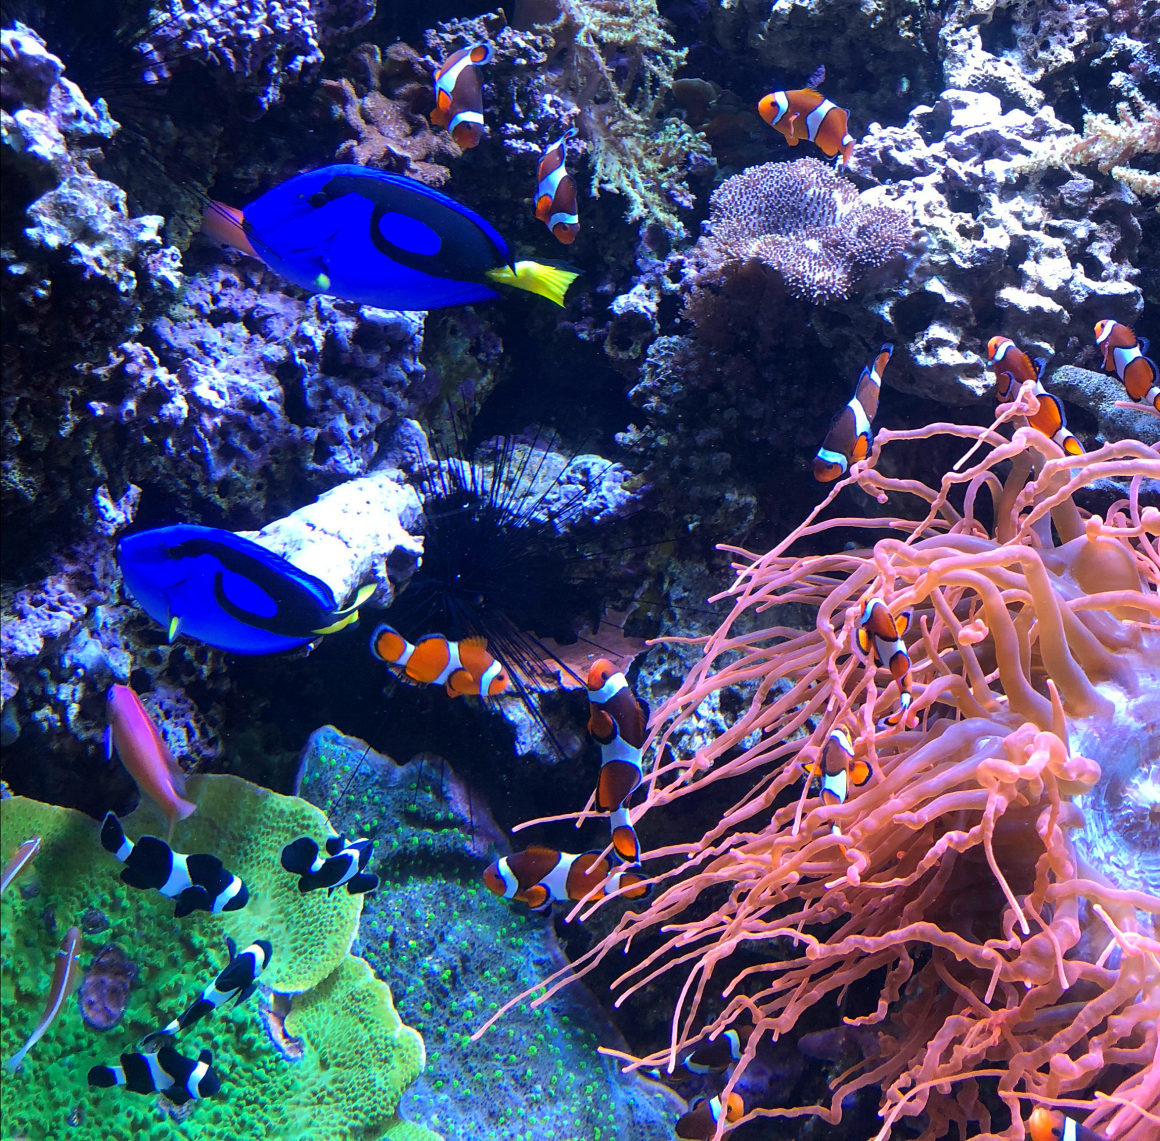 Finding Dory at Montery Bay Aquarium - Well Traveled Kids